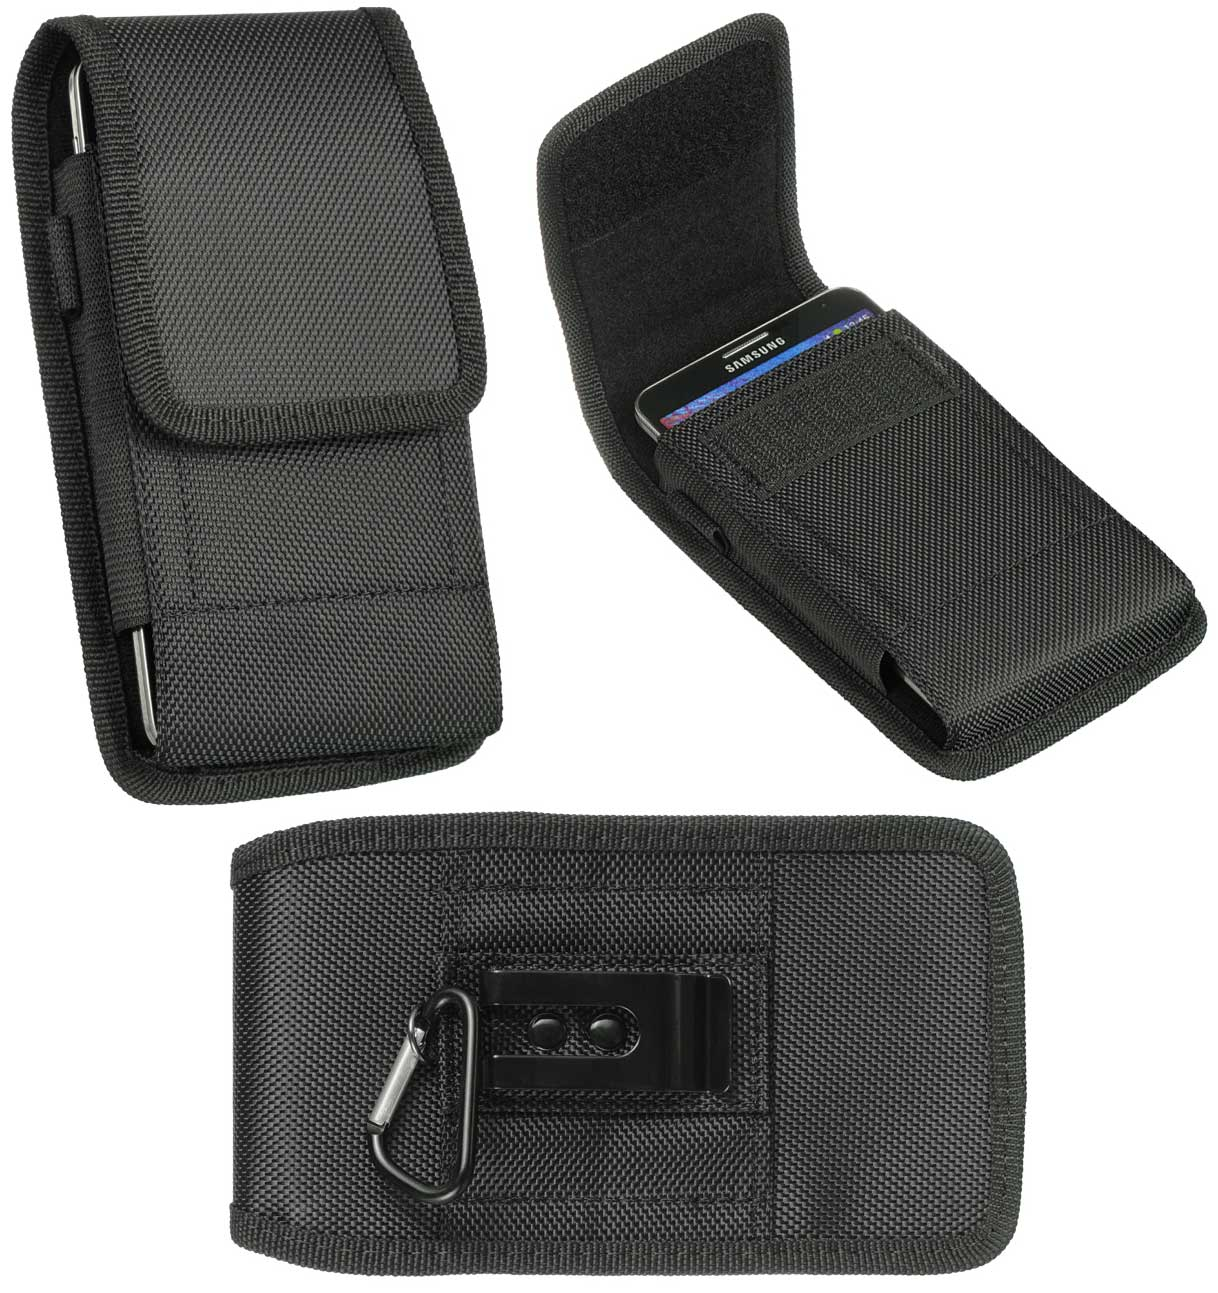 Huawei P9 Neoprene Nylon Case Pouch Clip Hook Black